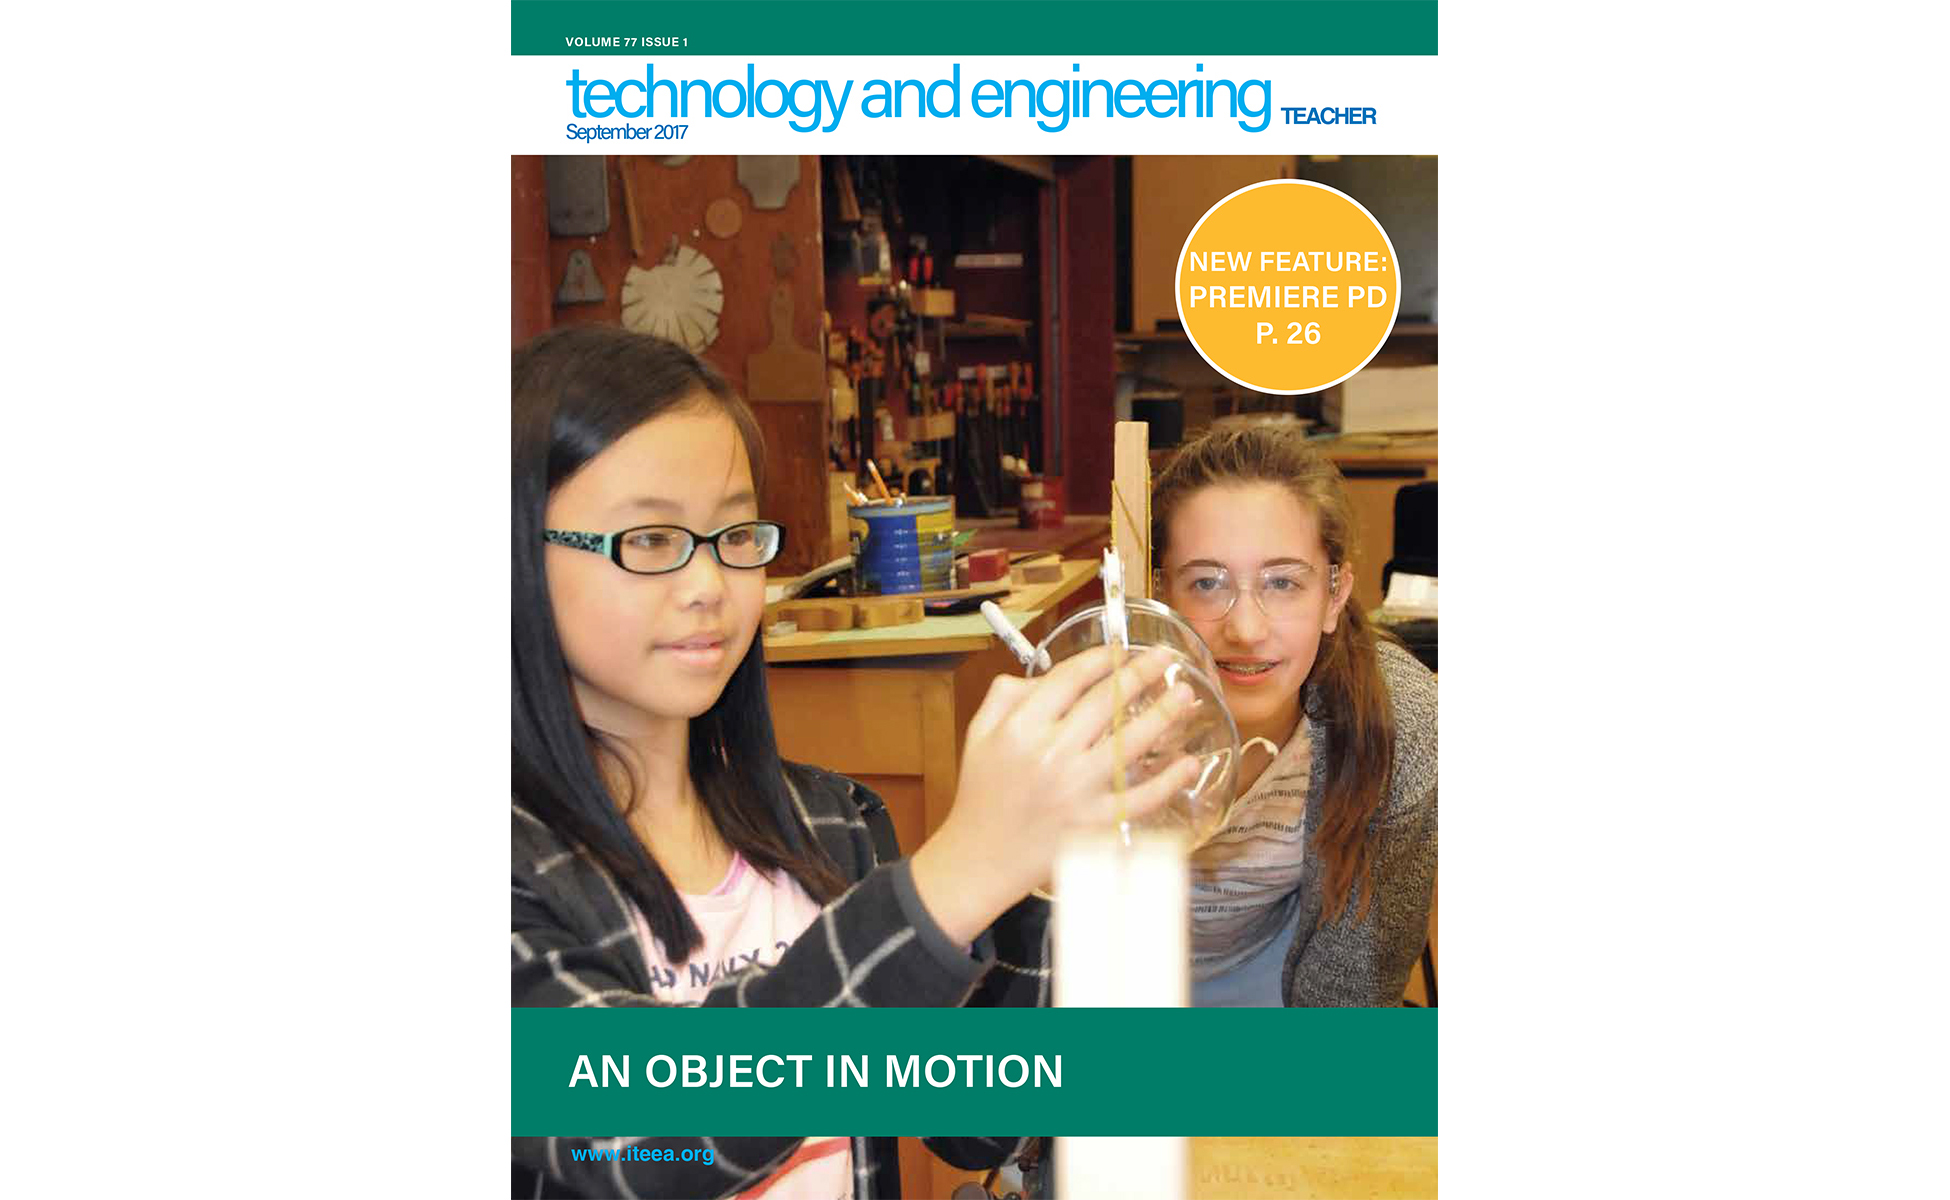 Here's a Sampling of What's Available in the September Issue of Technology and Engineering Teacher